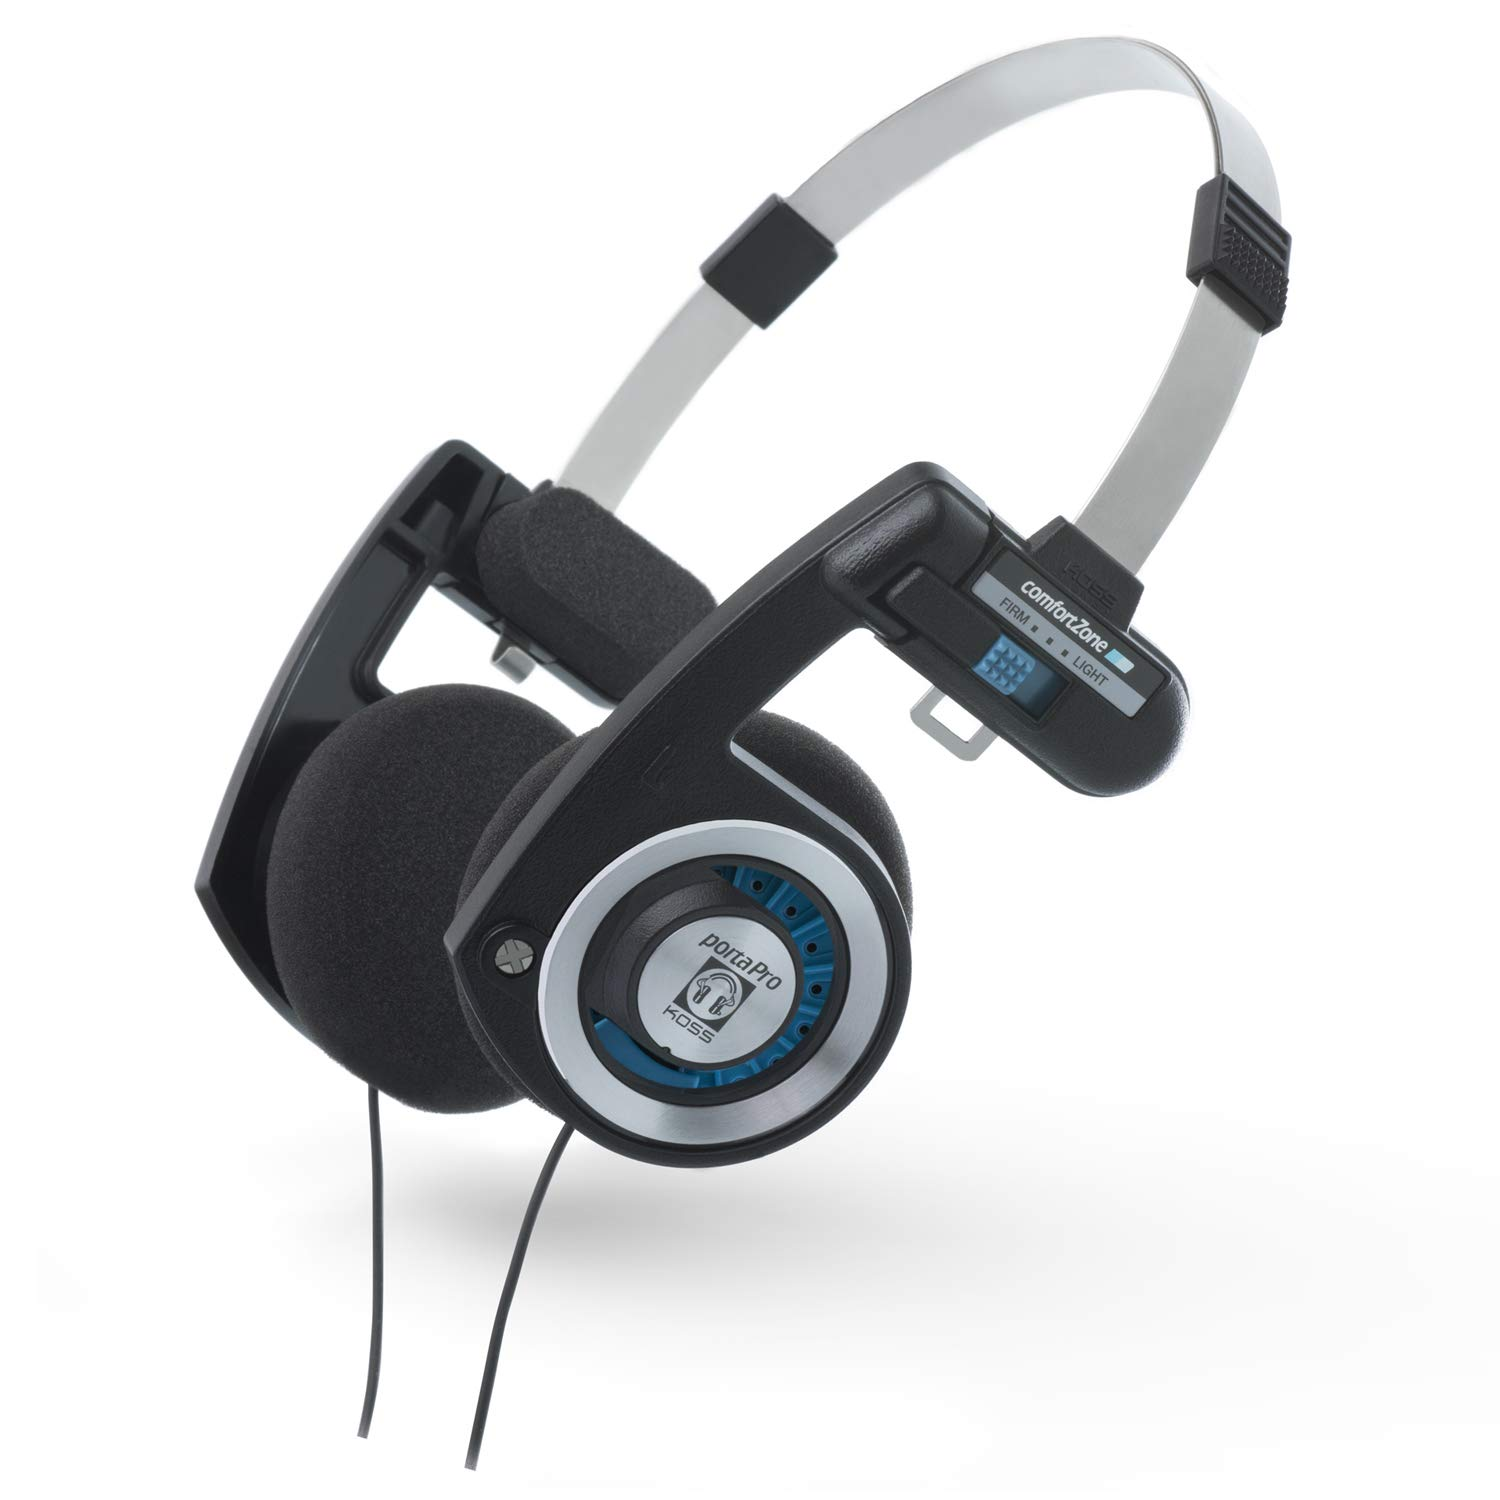 Koss Porta Pro Stereophones - Auriculares Porta ProWith Mic On-Ear Plata: Amazon.es: Electrónica